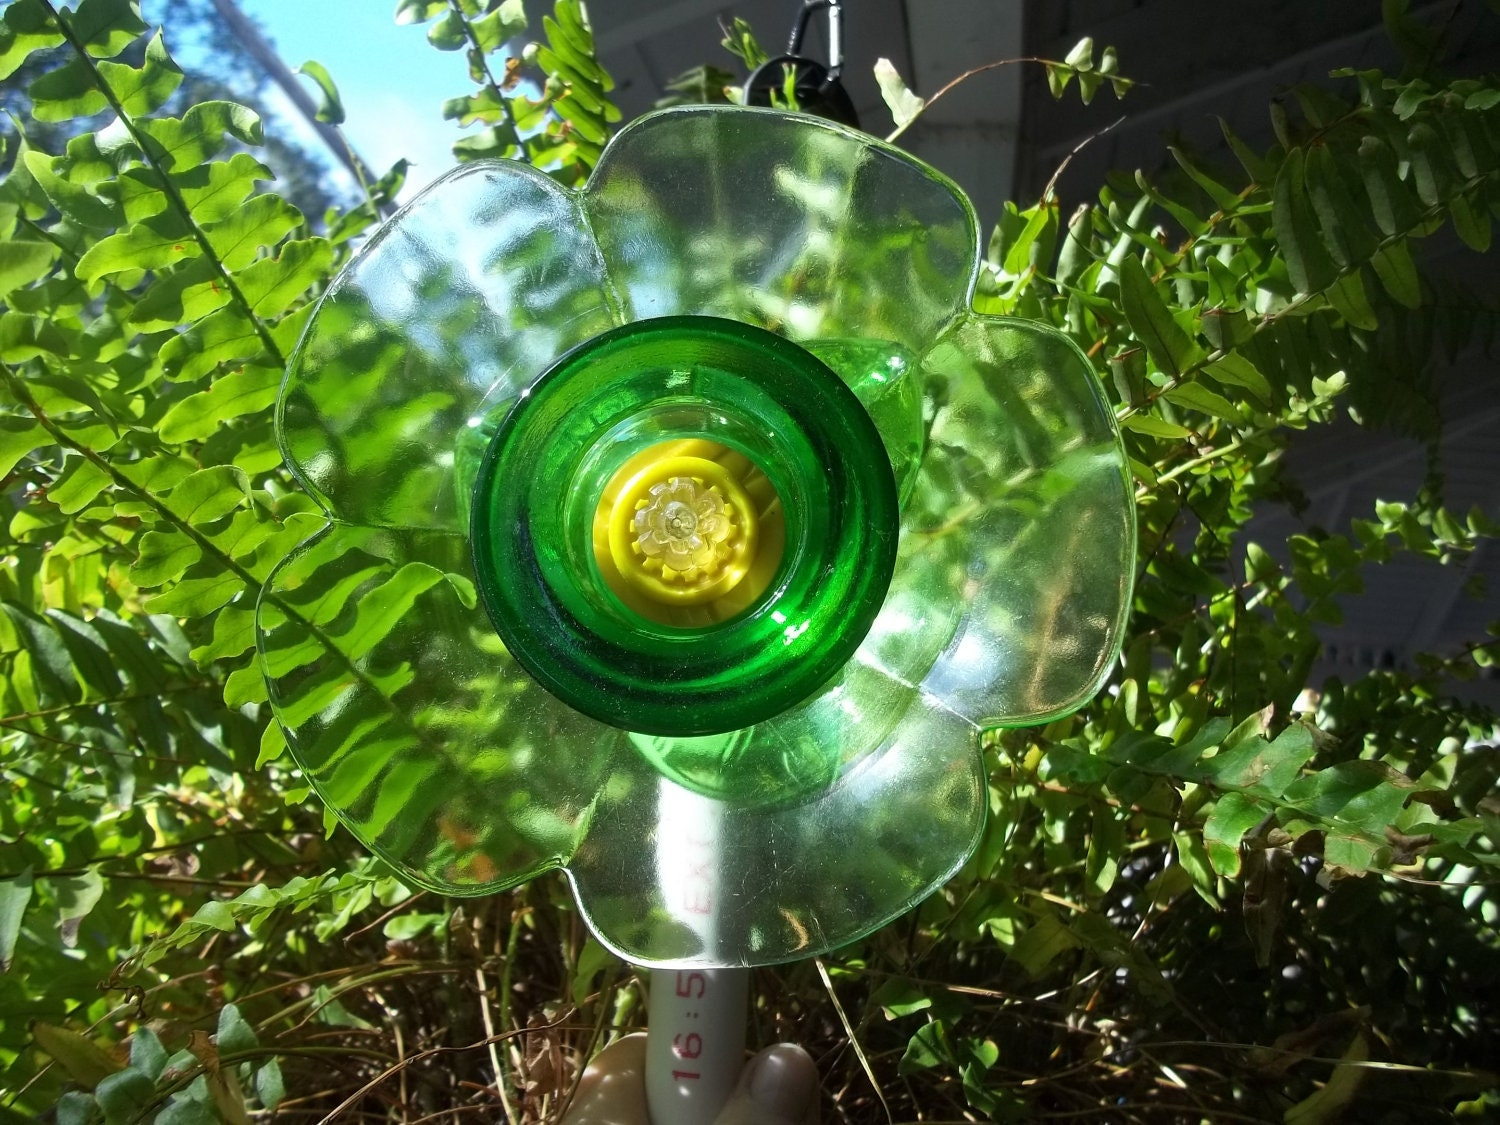 Recycled garden yard art glass flower touch by for Recycled glass art